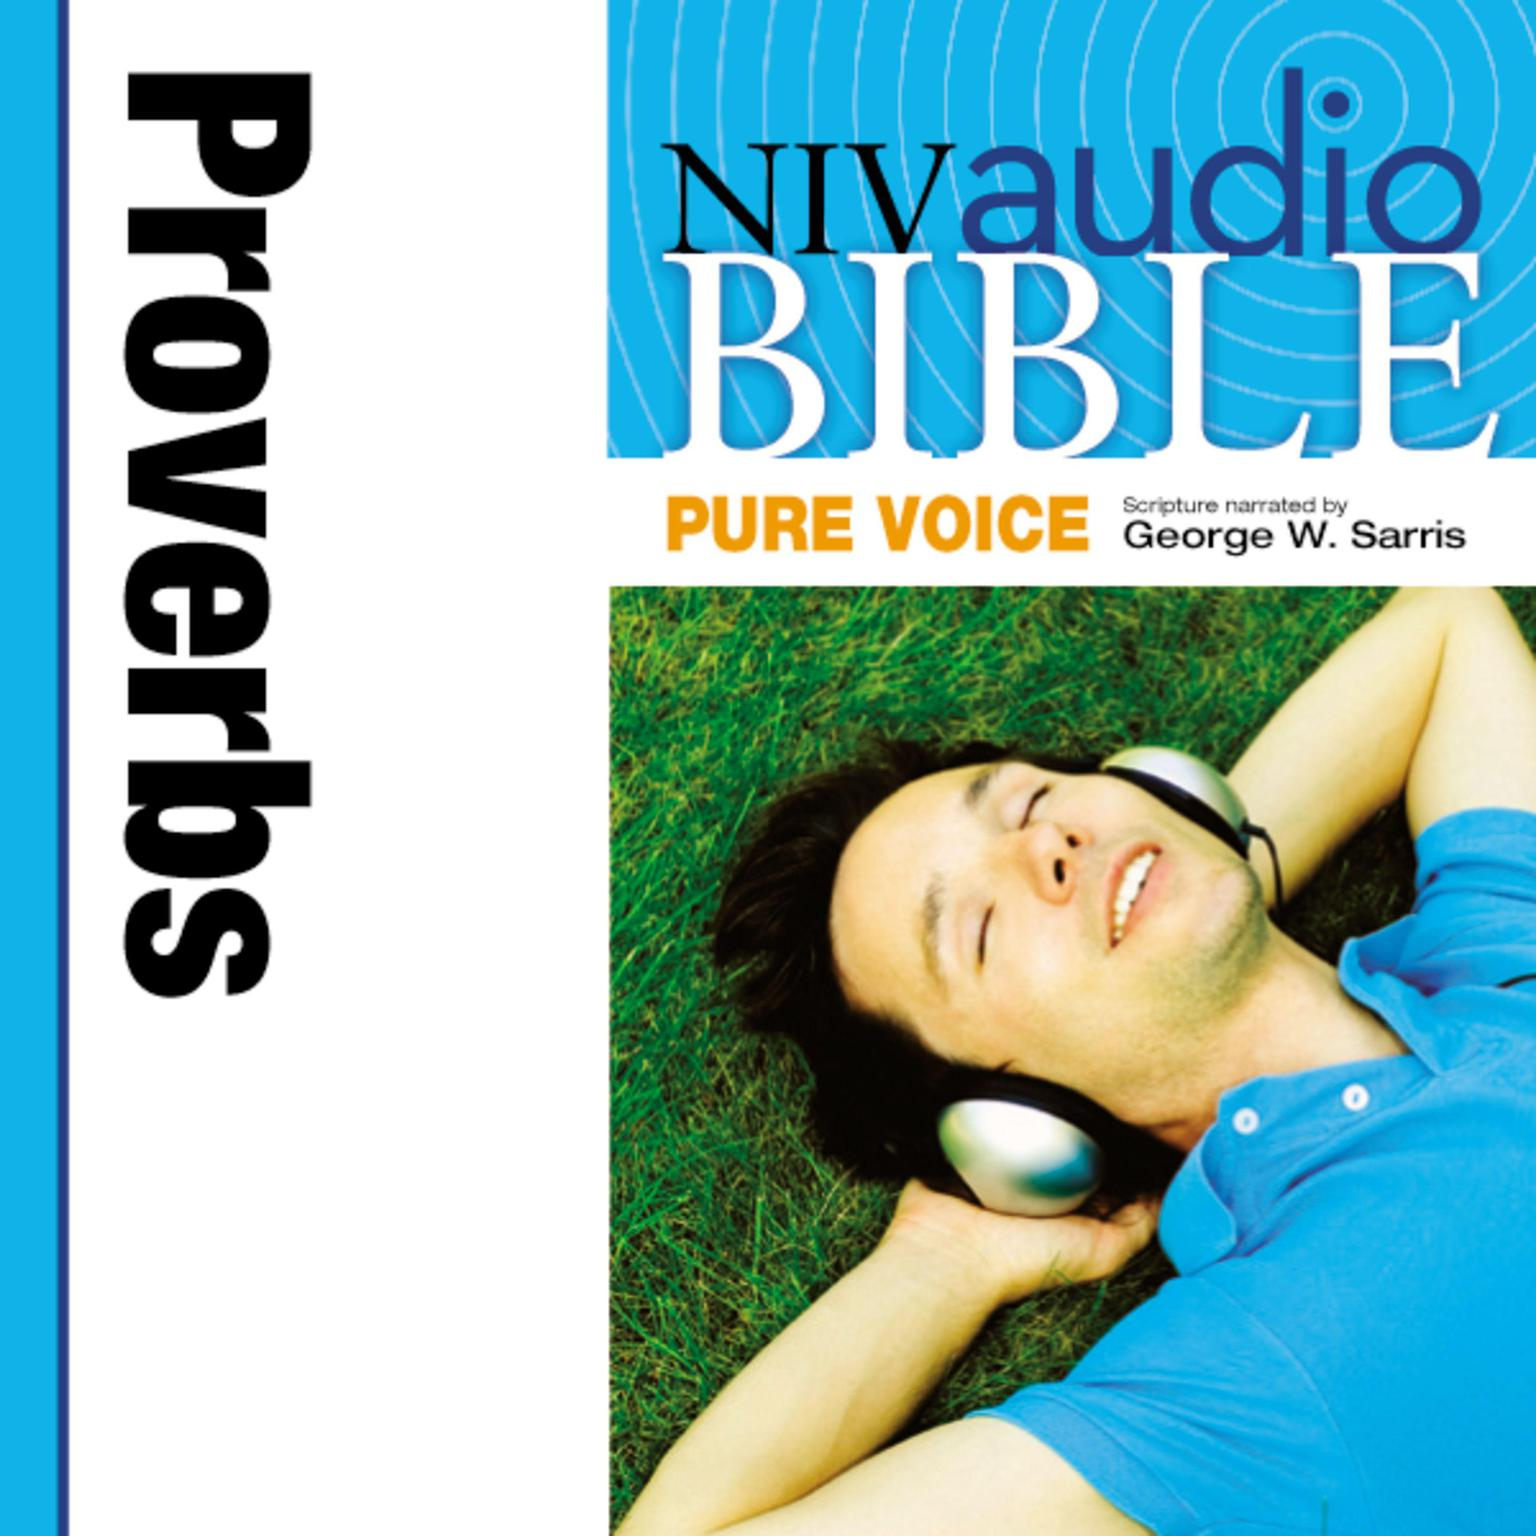 Printable NIV, Audio Bible, Pure Voice: Proverbs, Audio Download Audiobook Cover Art